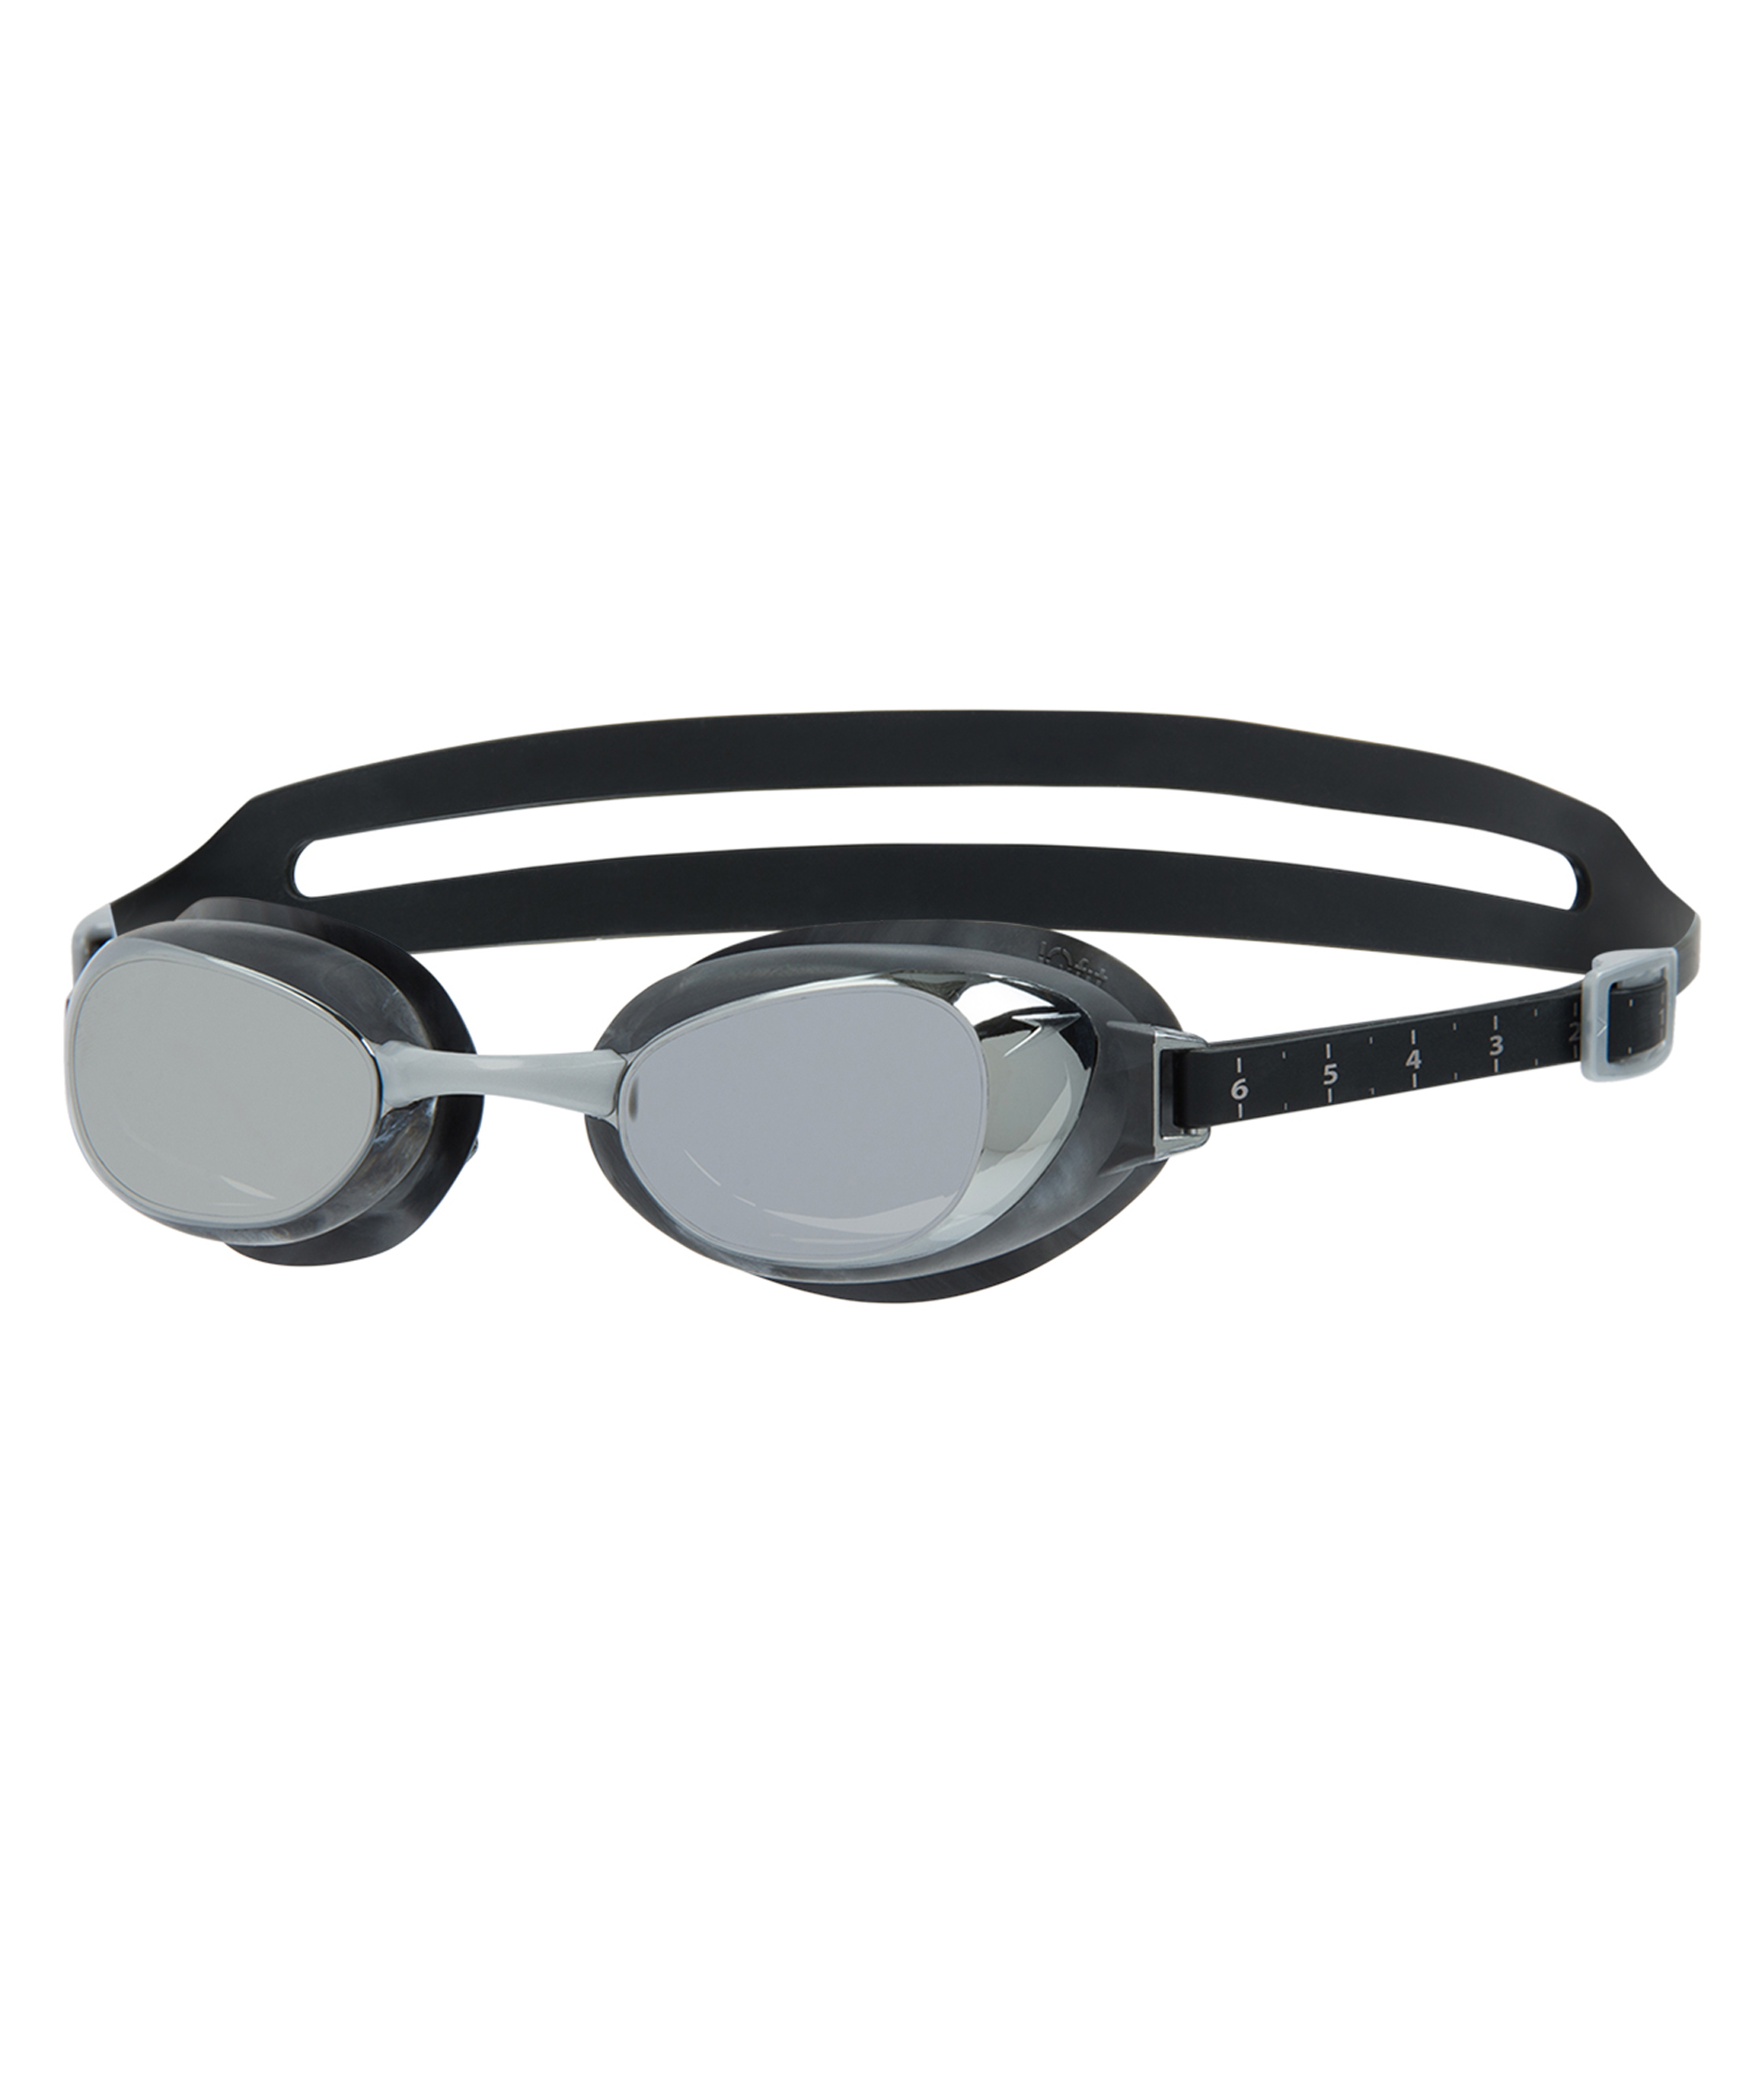 Speedo Aquapure Mirror Goggle - Black/Silver